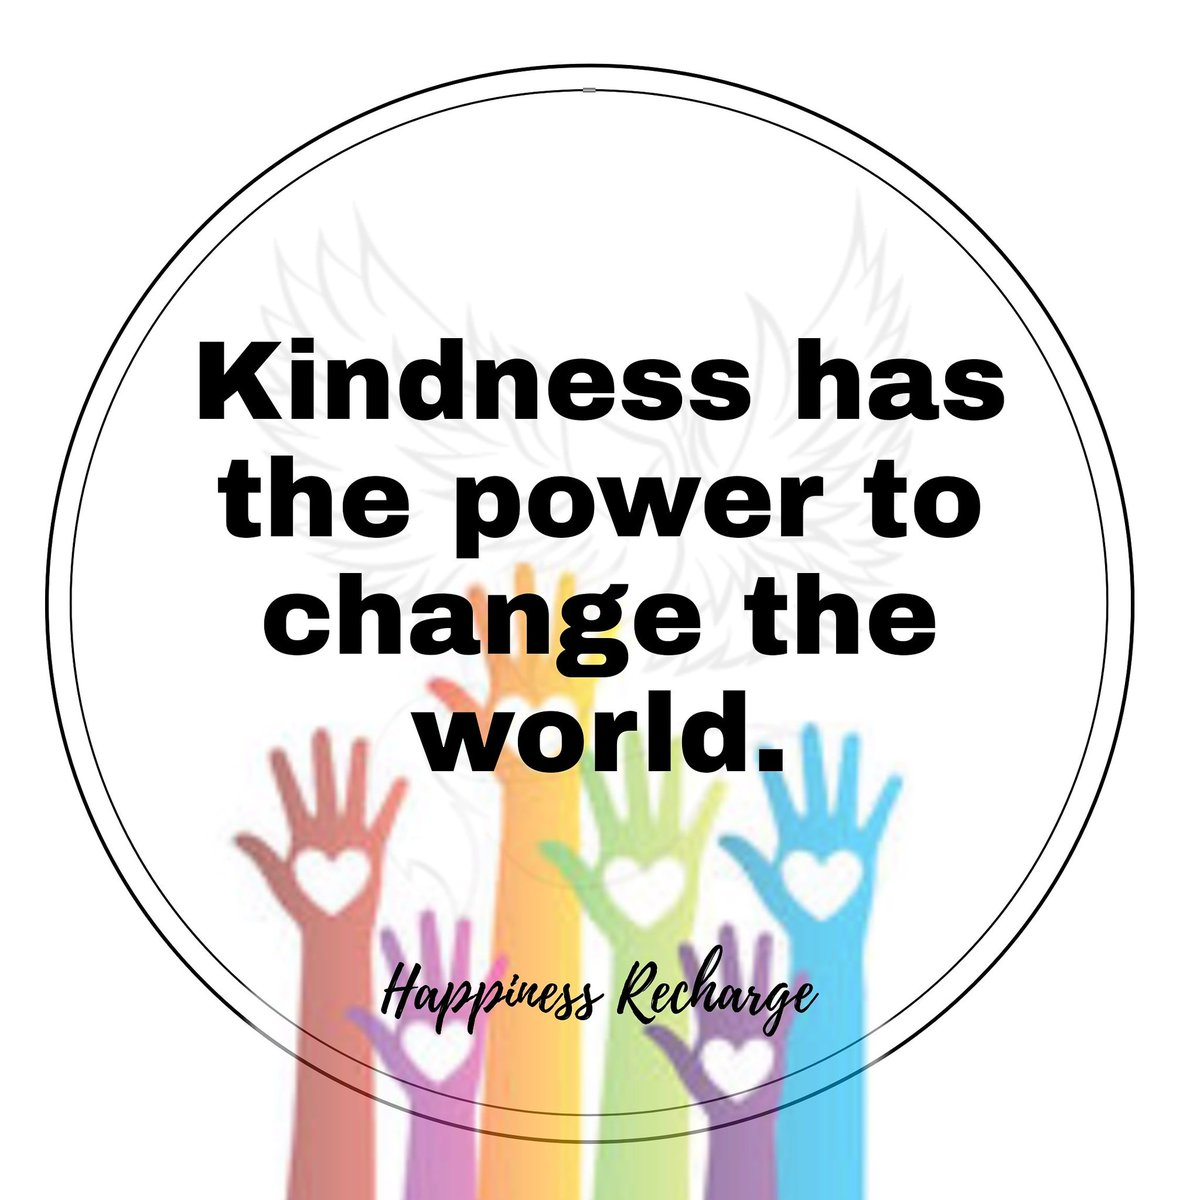 When acknowledgment iswoven with tenderness and compassion, it sparks a light that can ignite someone's heart. We all have the power to light this flame with something as simple as kindness. #HappinessRecharge #kindness #changetheworld #compassion #begoodtoothers #bekind